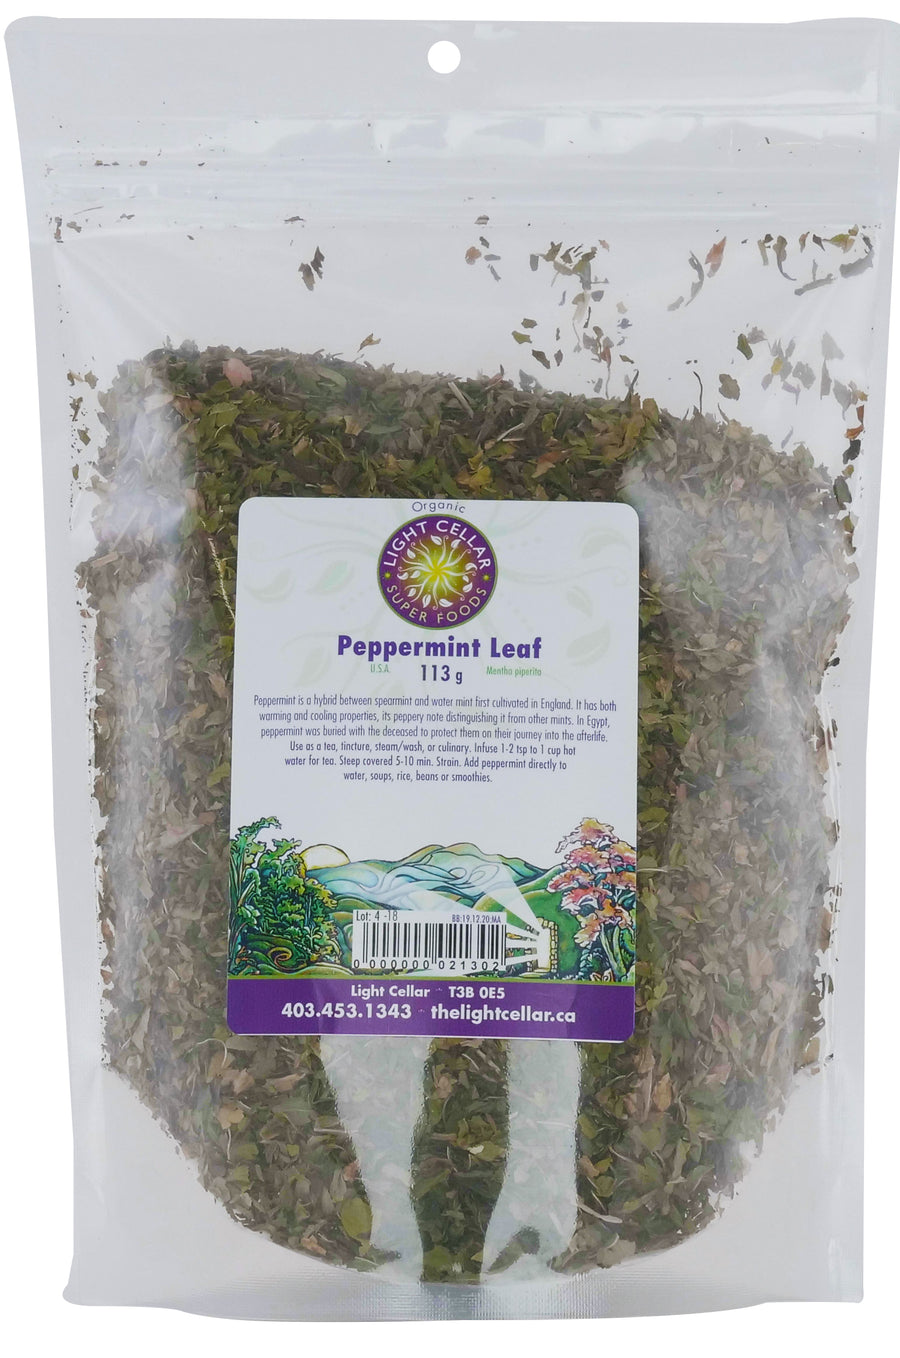 Peppermint Leaf 113g